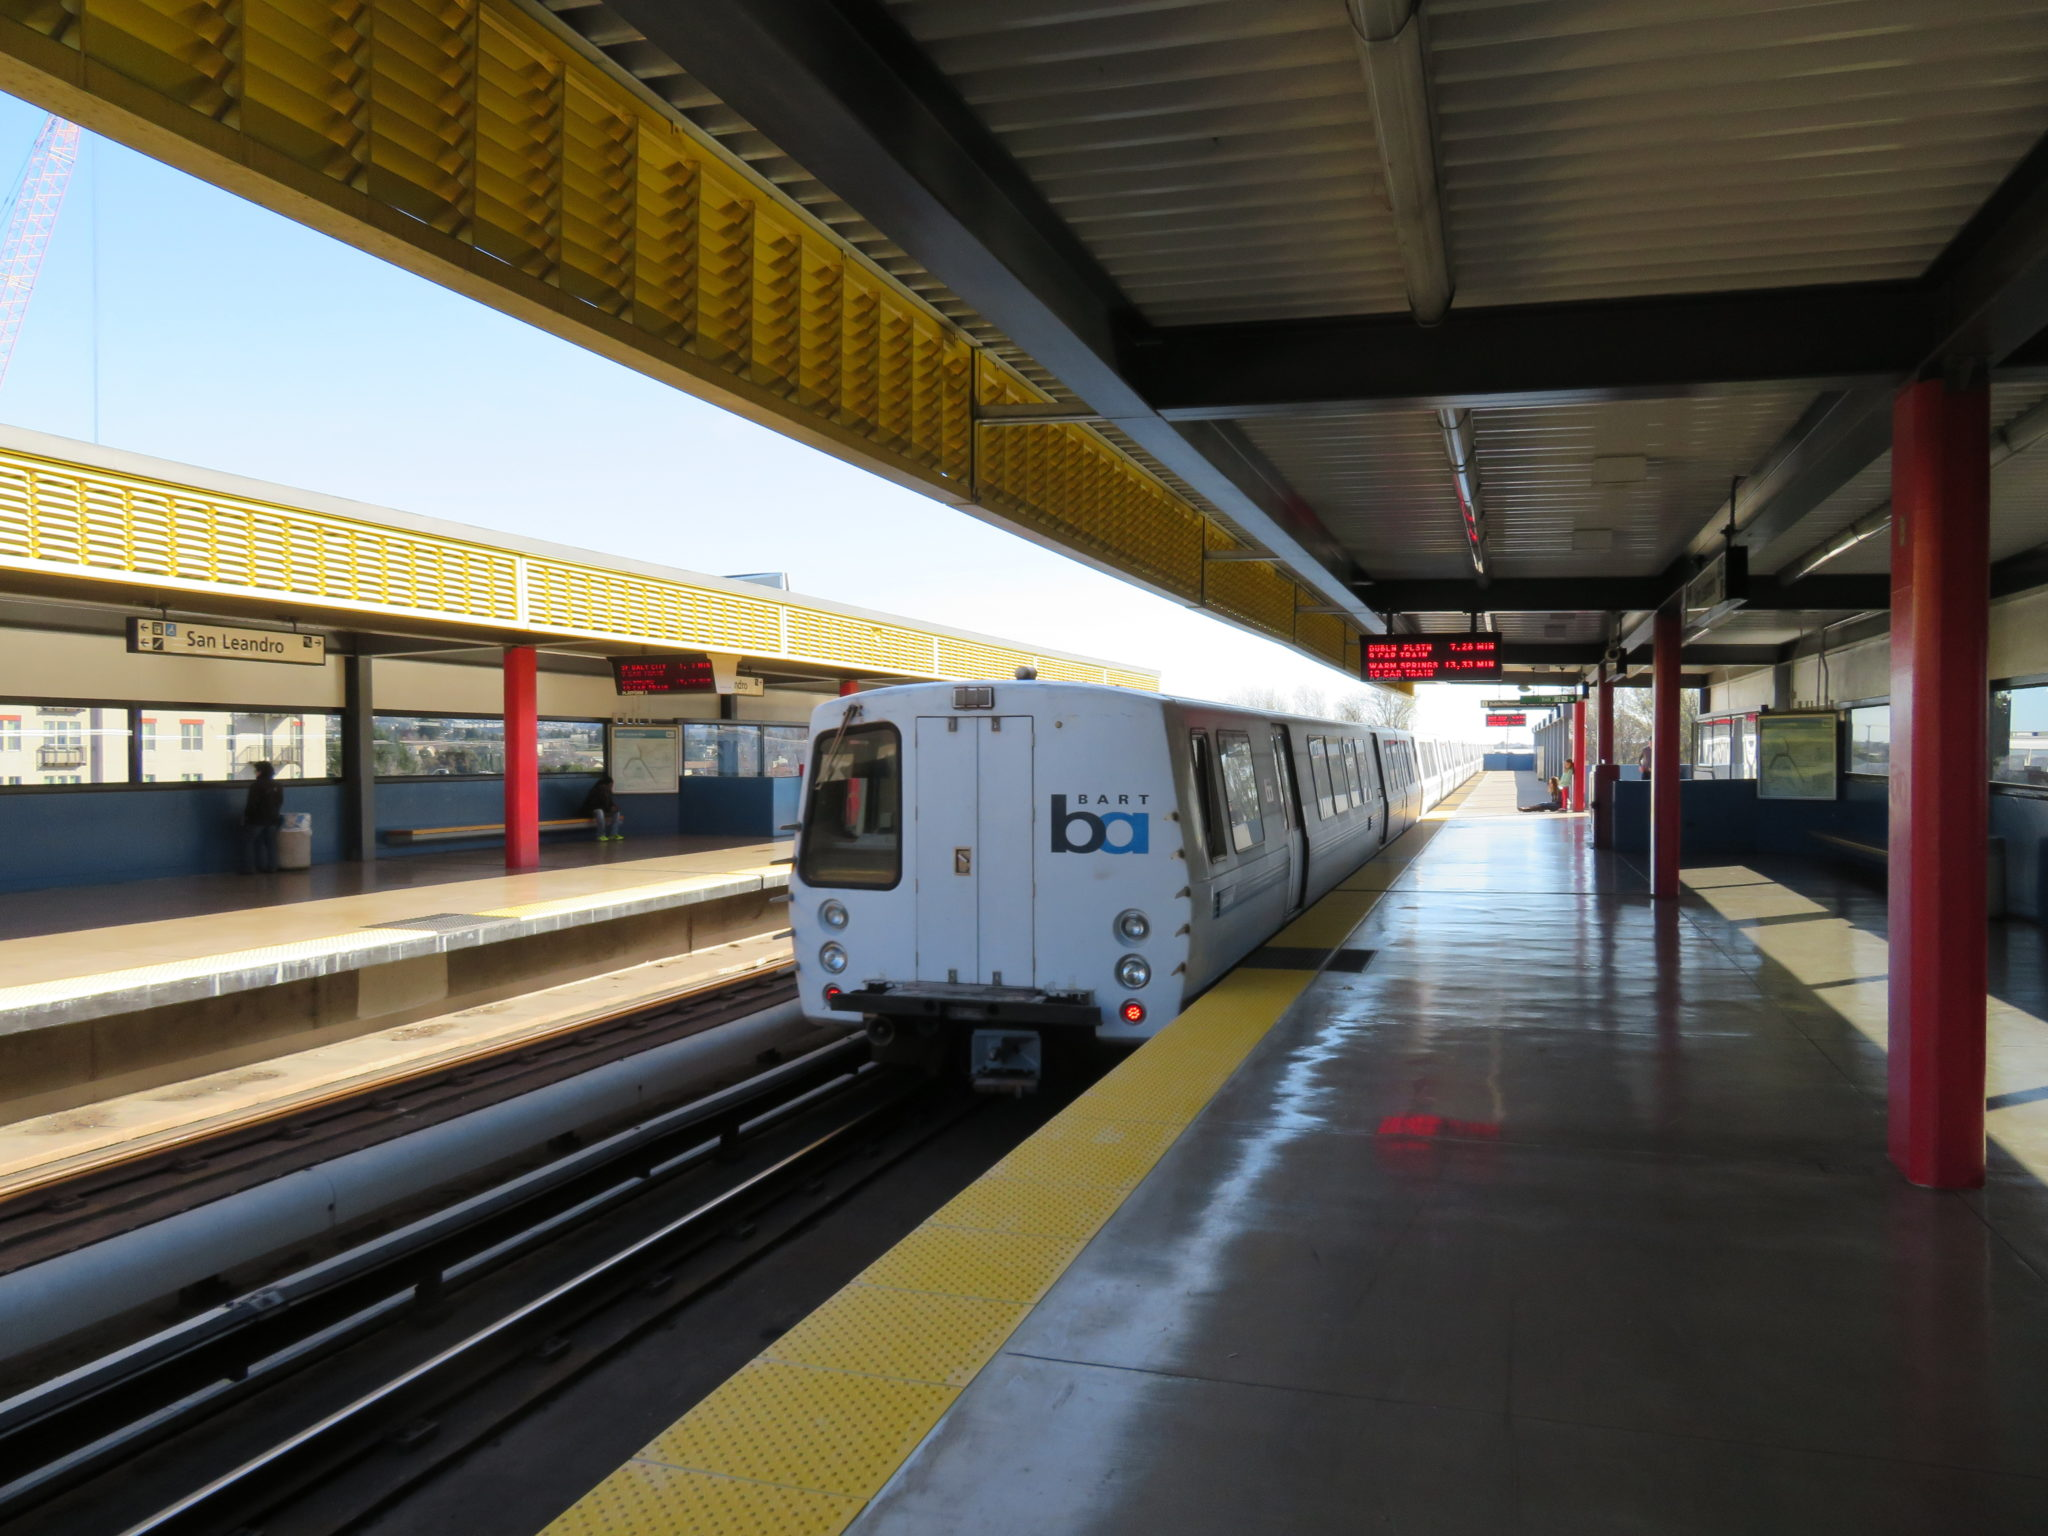 Train at BART San Leandro station